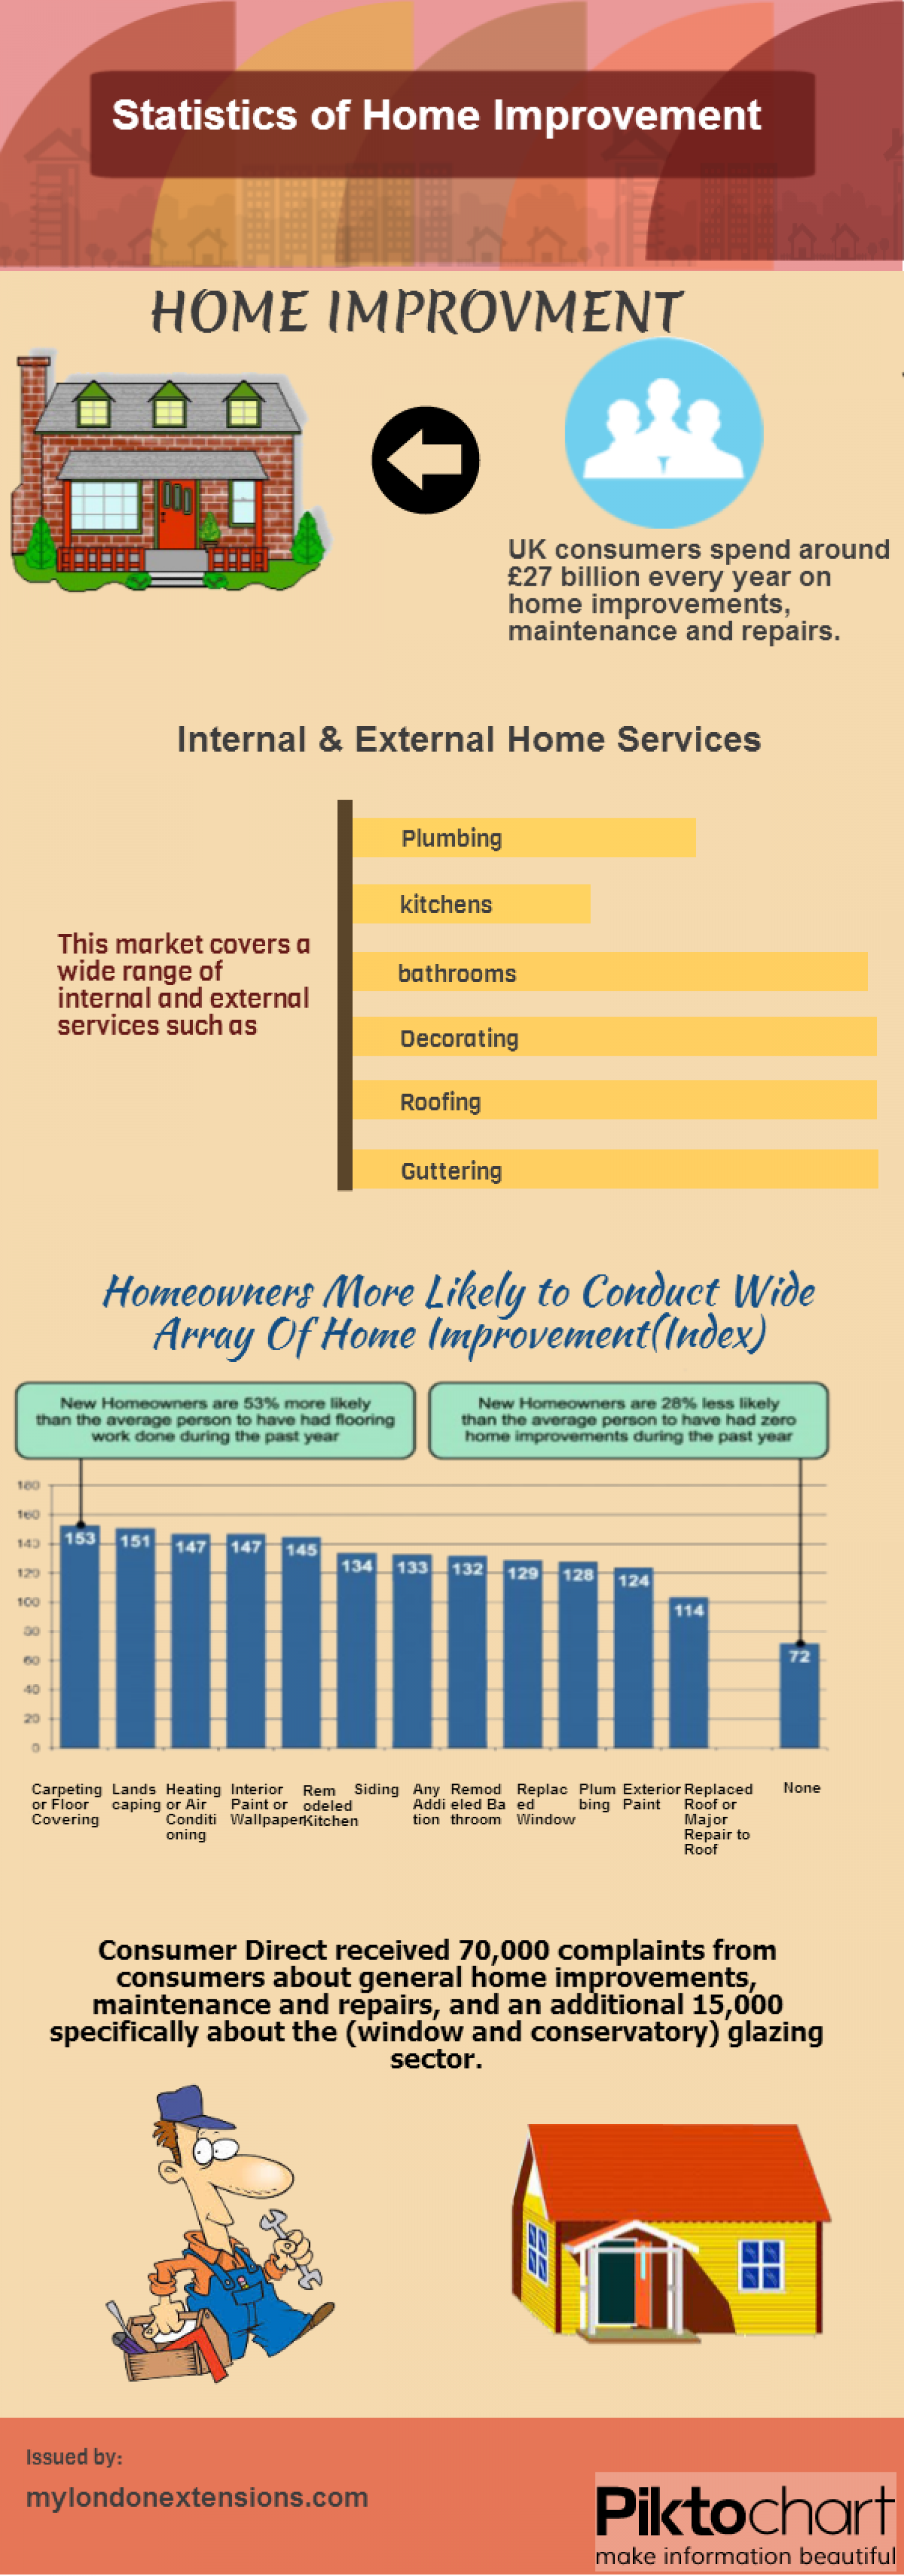 Statistics of Home Improvement Infographic